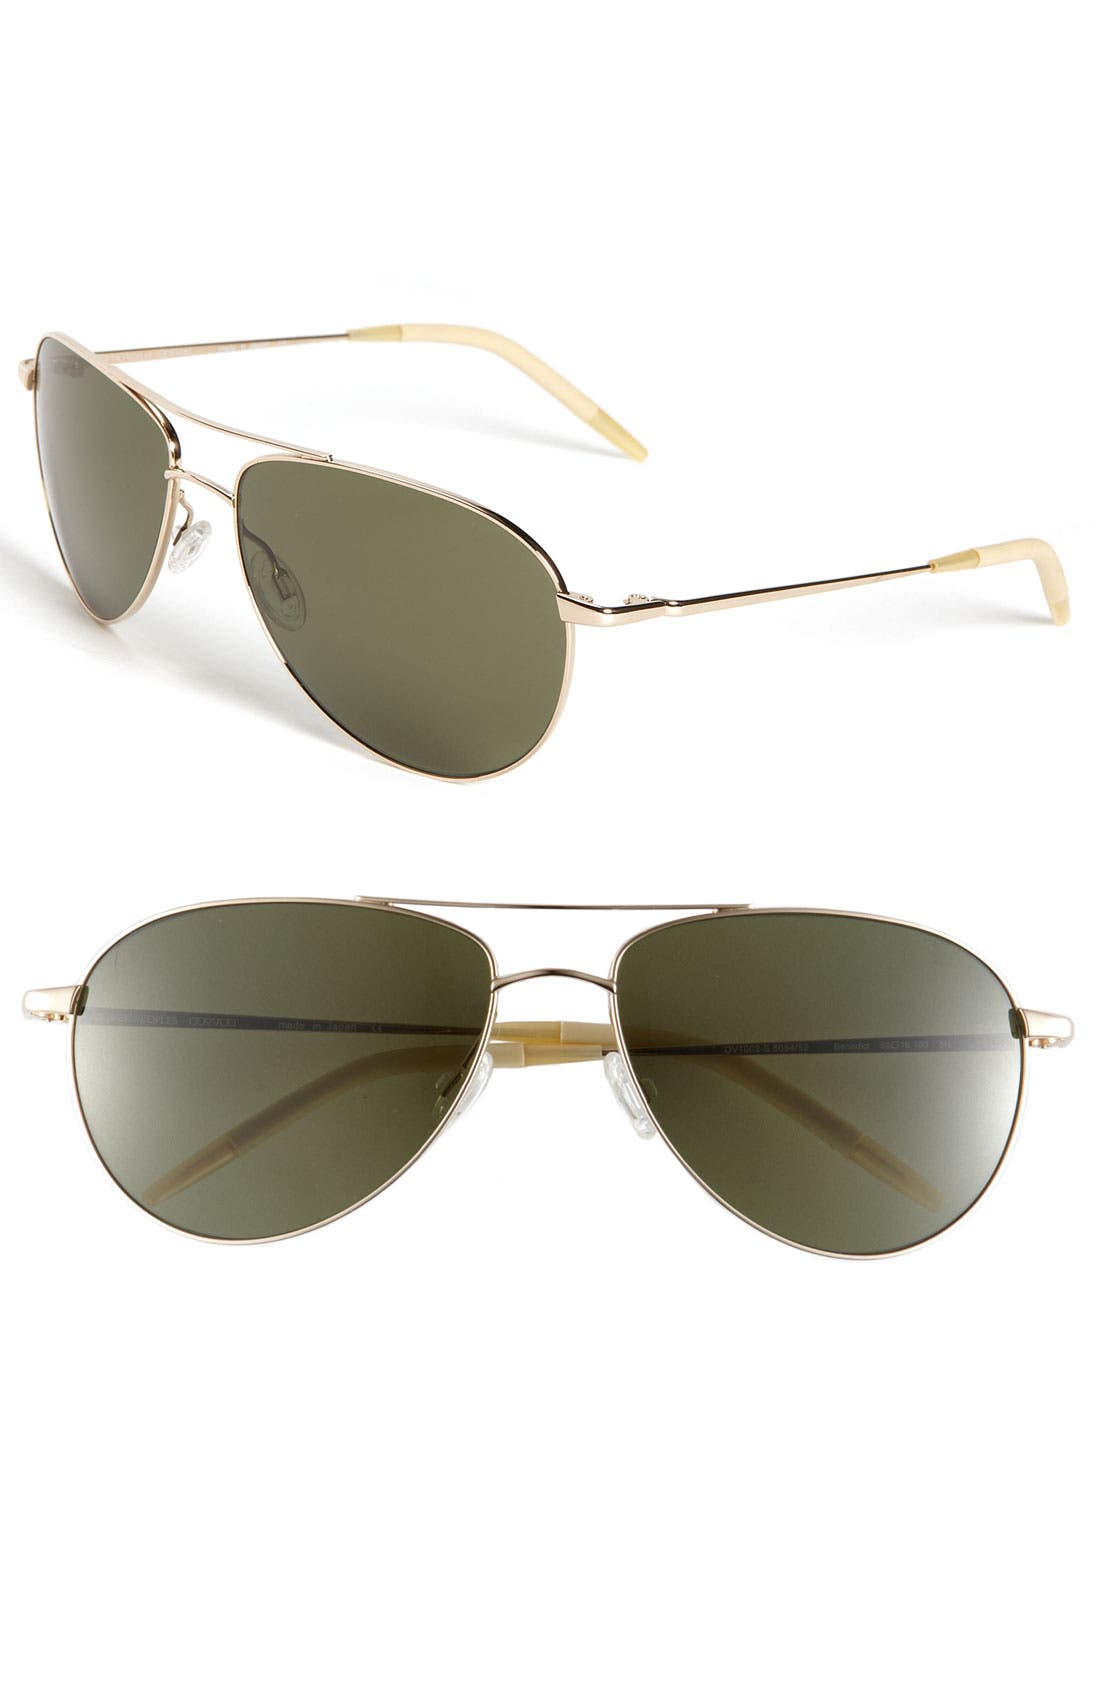 Alternate Image 1 Selected - Oliver Peoples 'Benedict' 59mm Aviator Sunglasses (Regular Retail Price: $350.00)